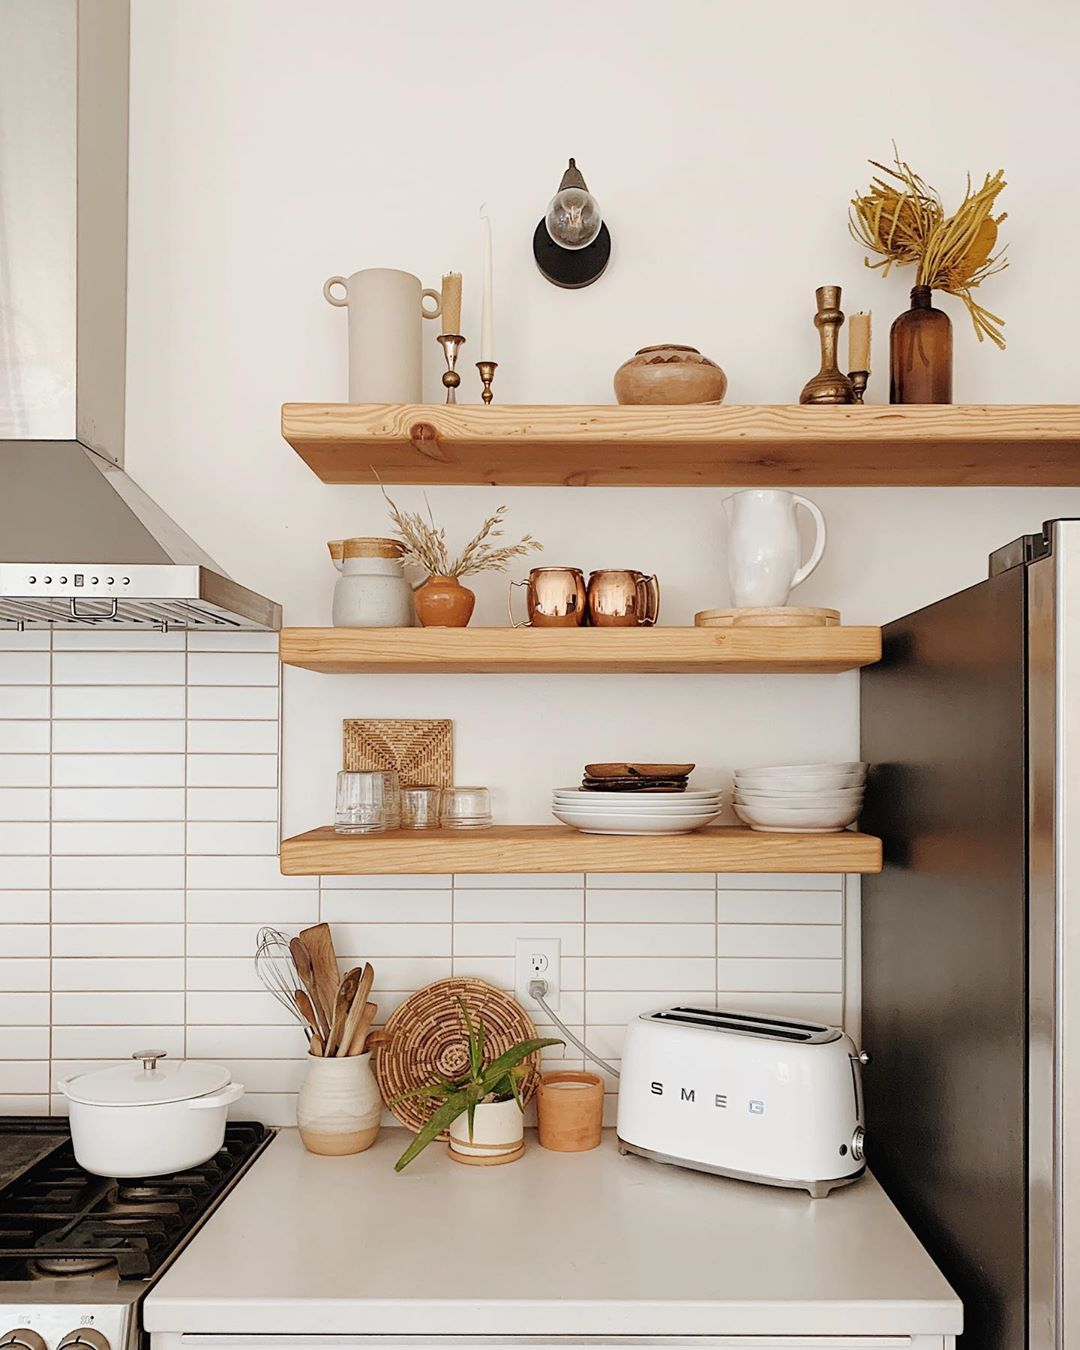 3 043 Likes 59 Comments Emily Oursouthwestnest On Instagram Thought You Guys Might Be In 2020 Open Kitchen Shelves Iron Shelf Brackets Metal Shelf Brackets